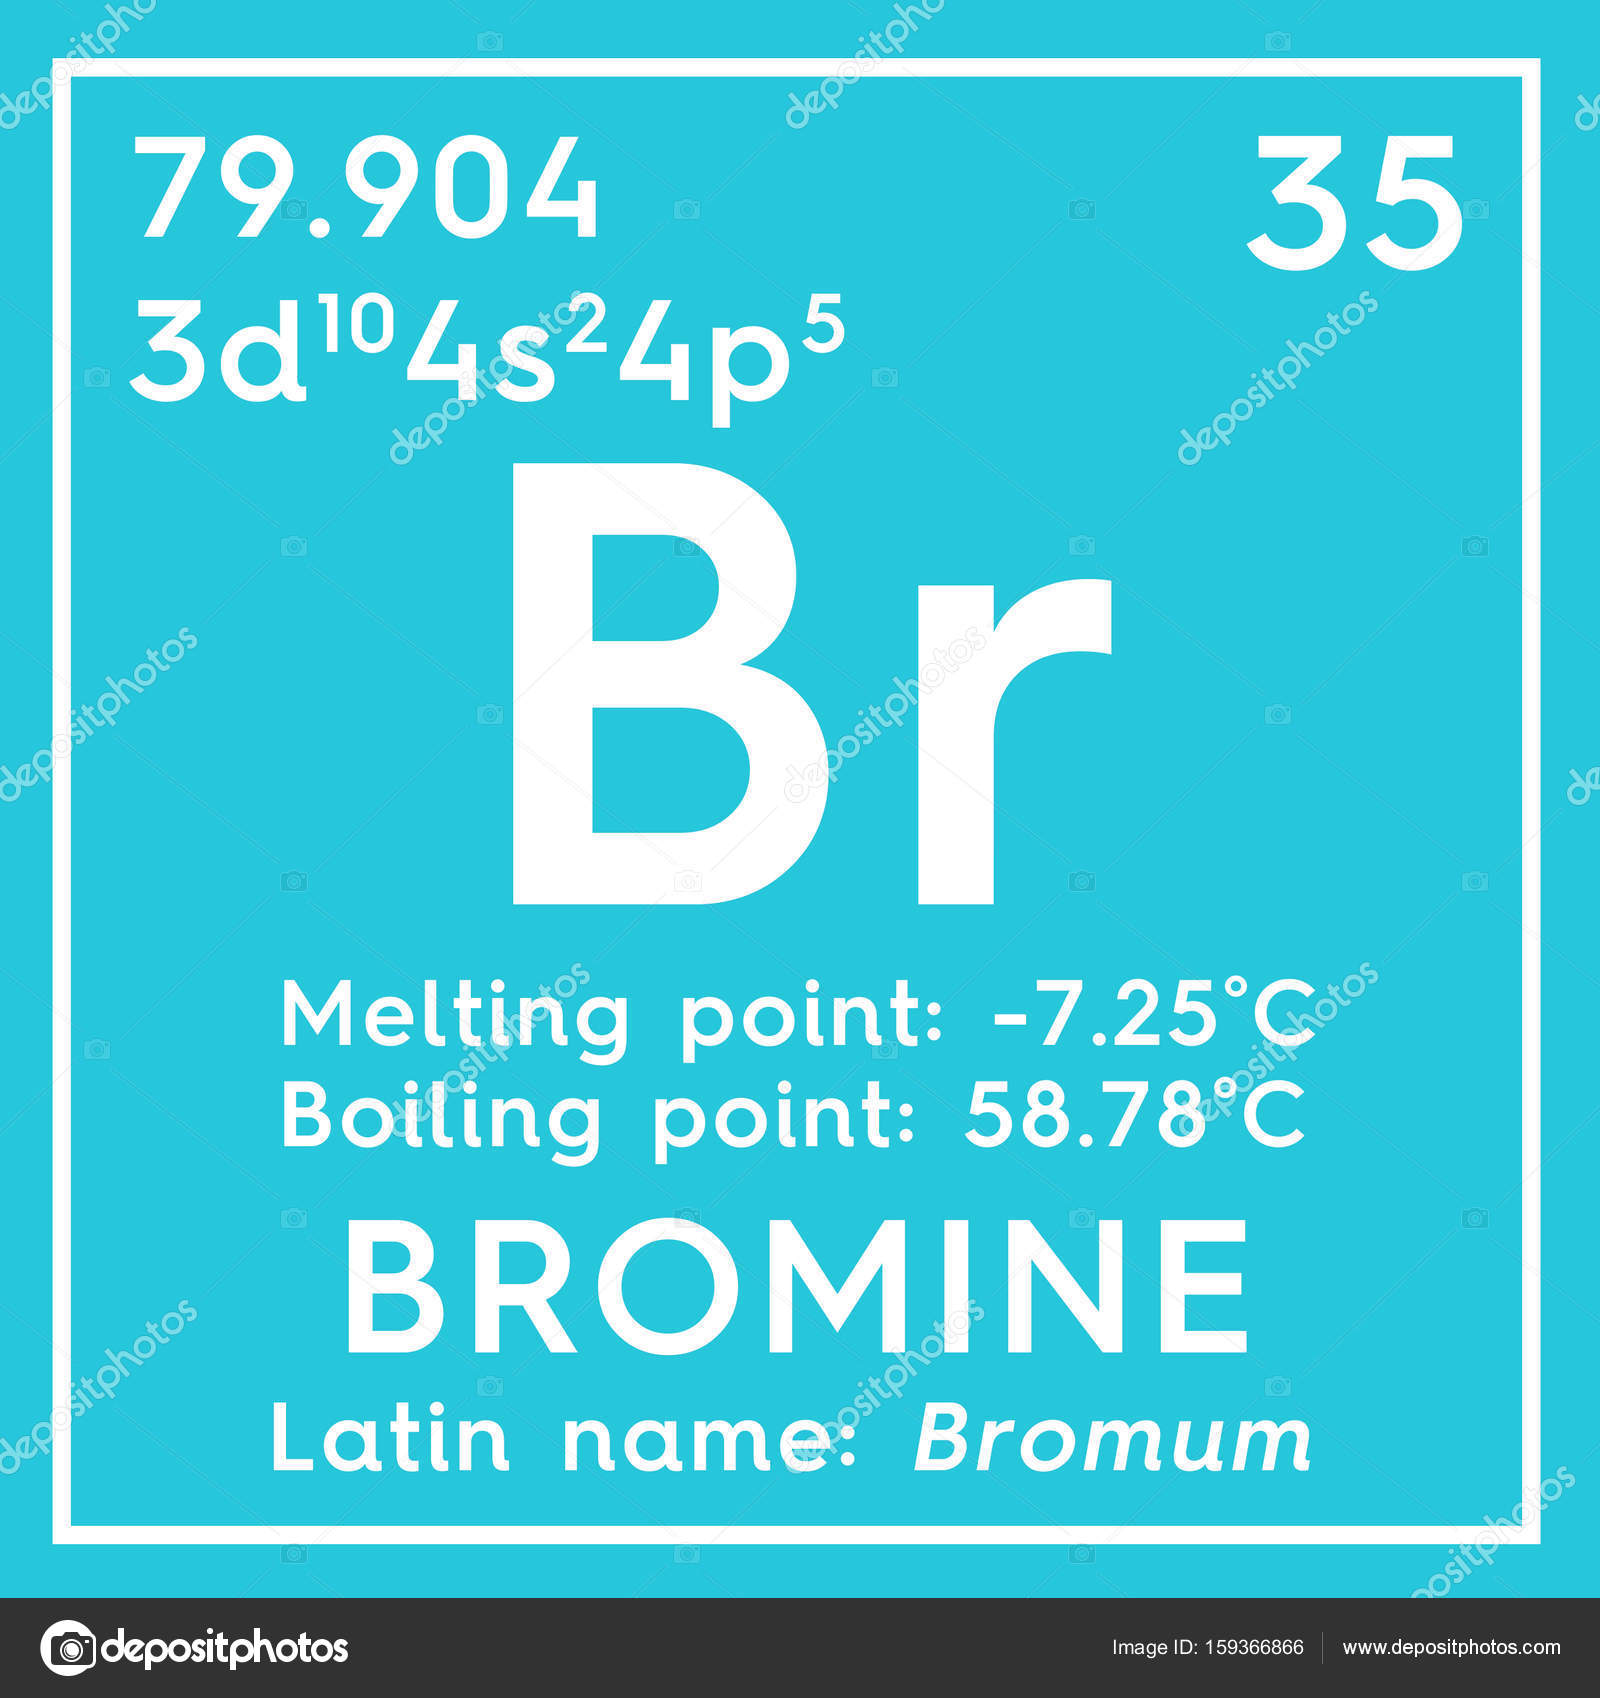 Bromine bromum halogens chemical element of mendeleevs periodic bromine bromum halogens chemical element of mendeleevs periodic table bromine in square cube creative concept photo by sanches812 urtaz Gallery